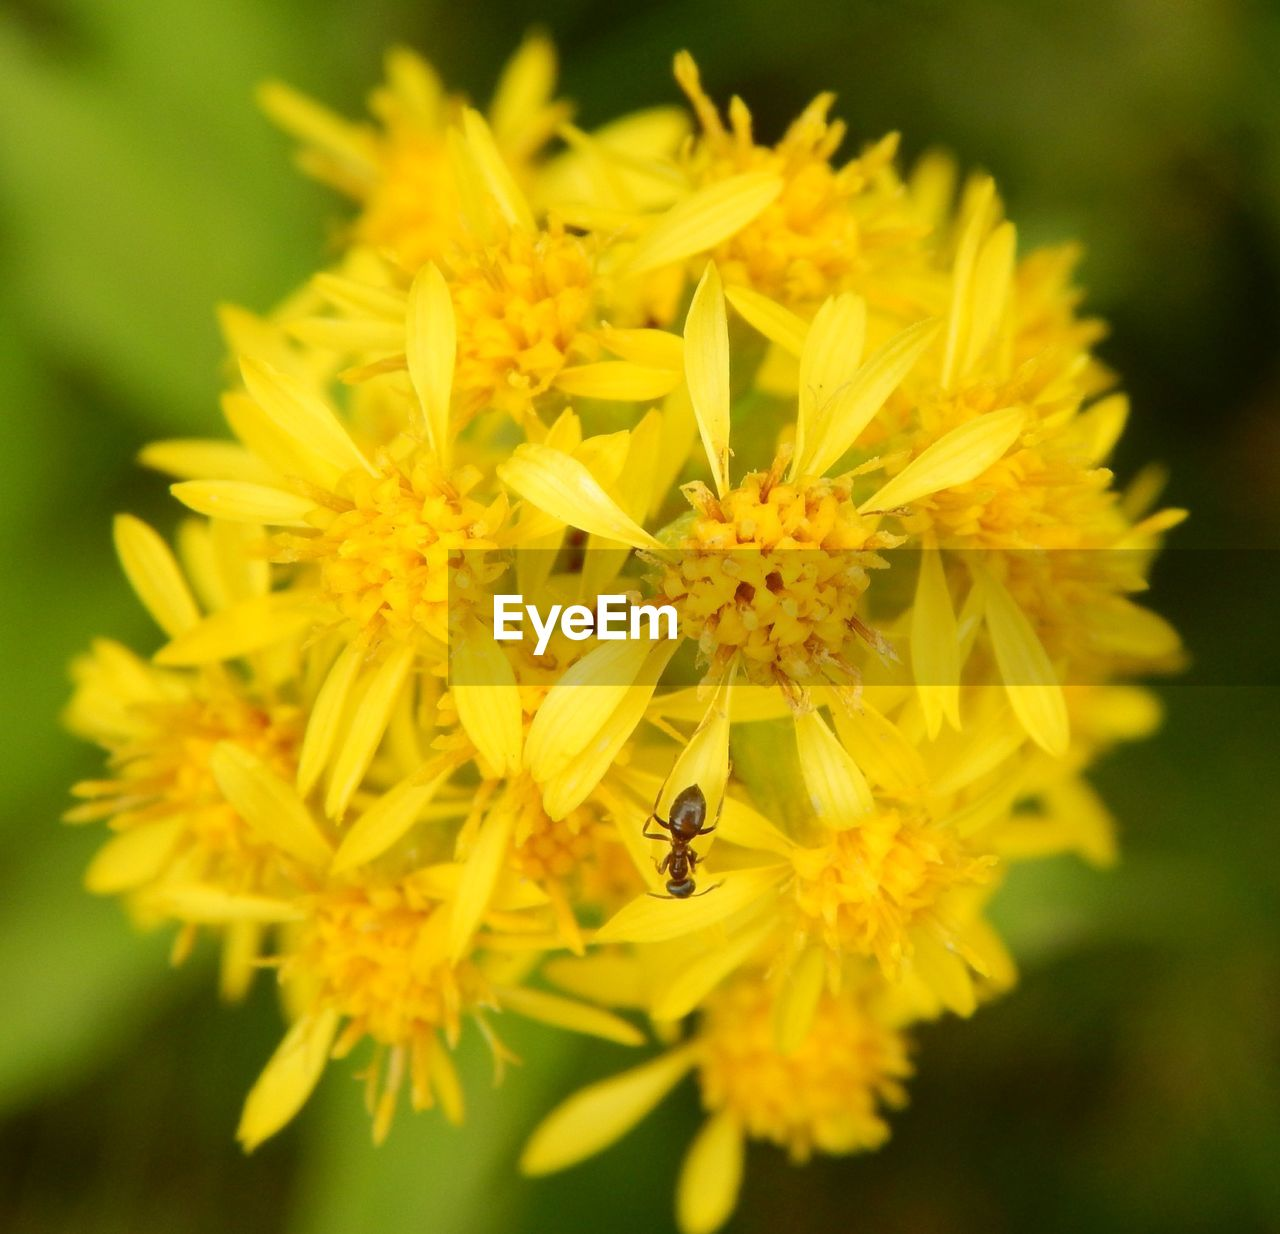 flower, insect, petal, yellow, fragility, nature, animal themes, one animal, bee, beauty in nature, animals in the wild, flower head, growth, freshness, plant, pollination, close-up, no people, day, outdoors, buzzing, blooming